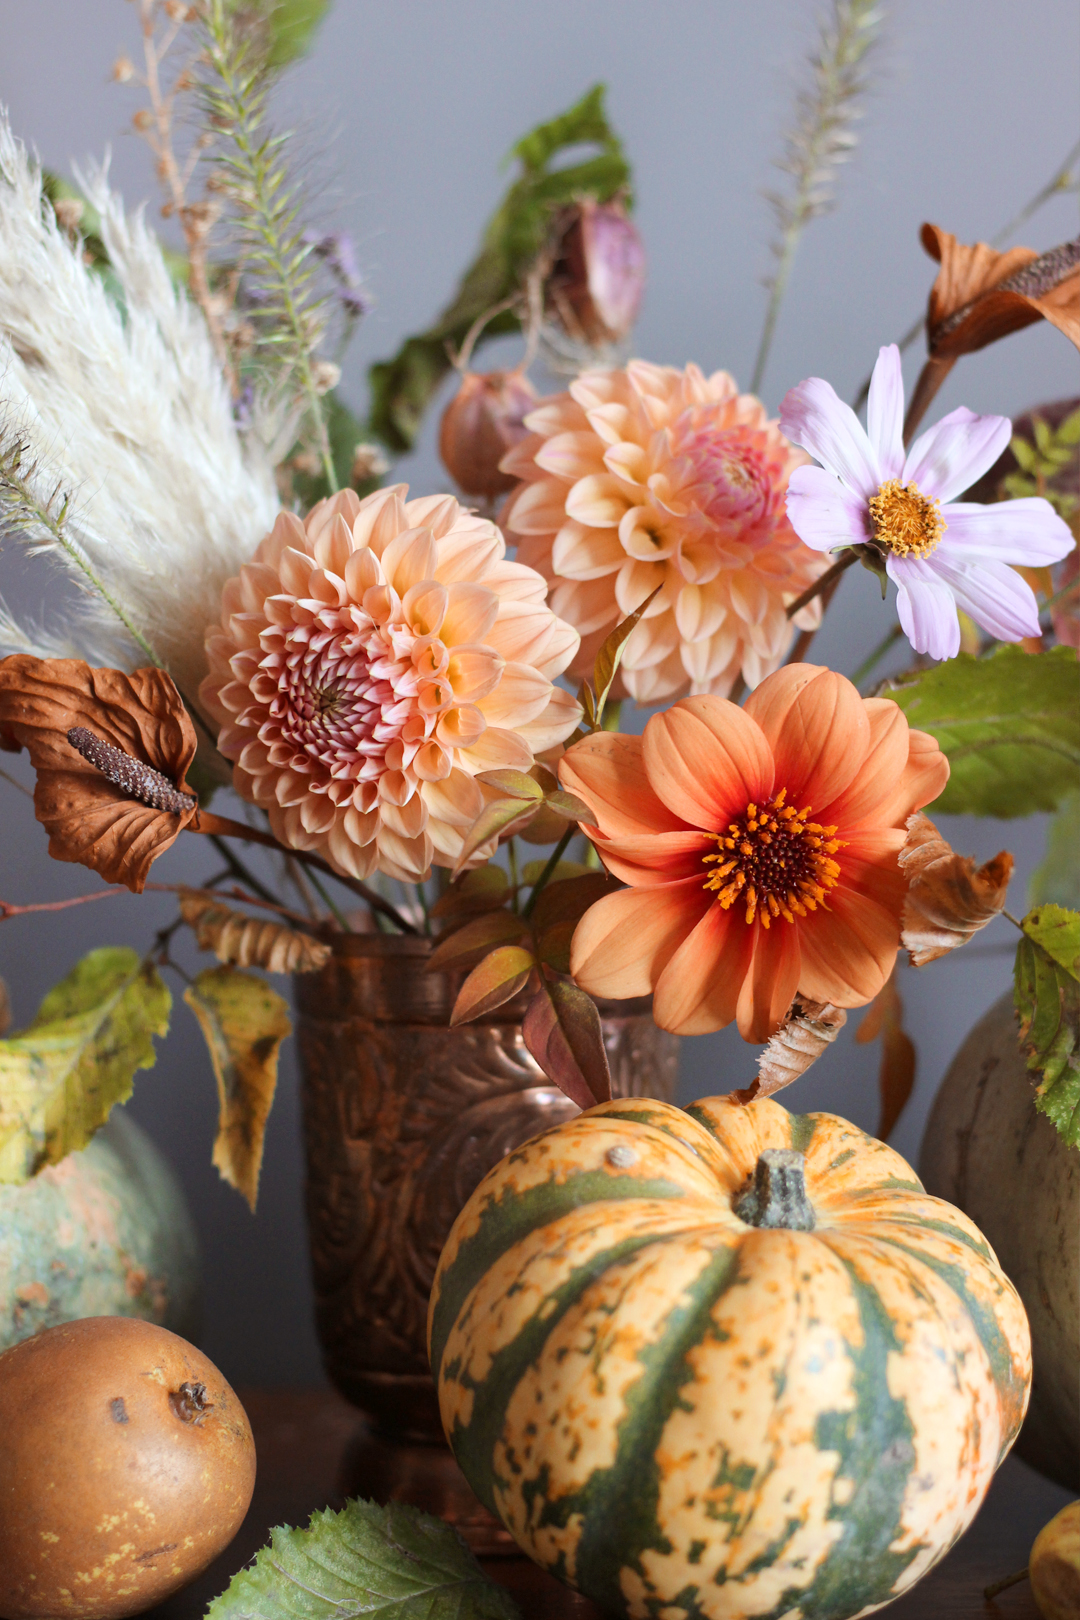 dahlias-floral-styling-fall-autumn-arrangement-ancy-straughan.jpg